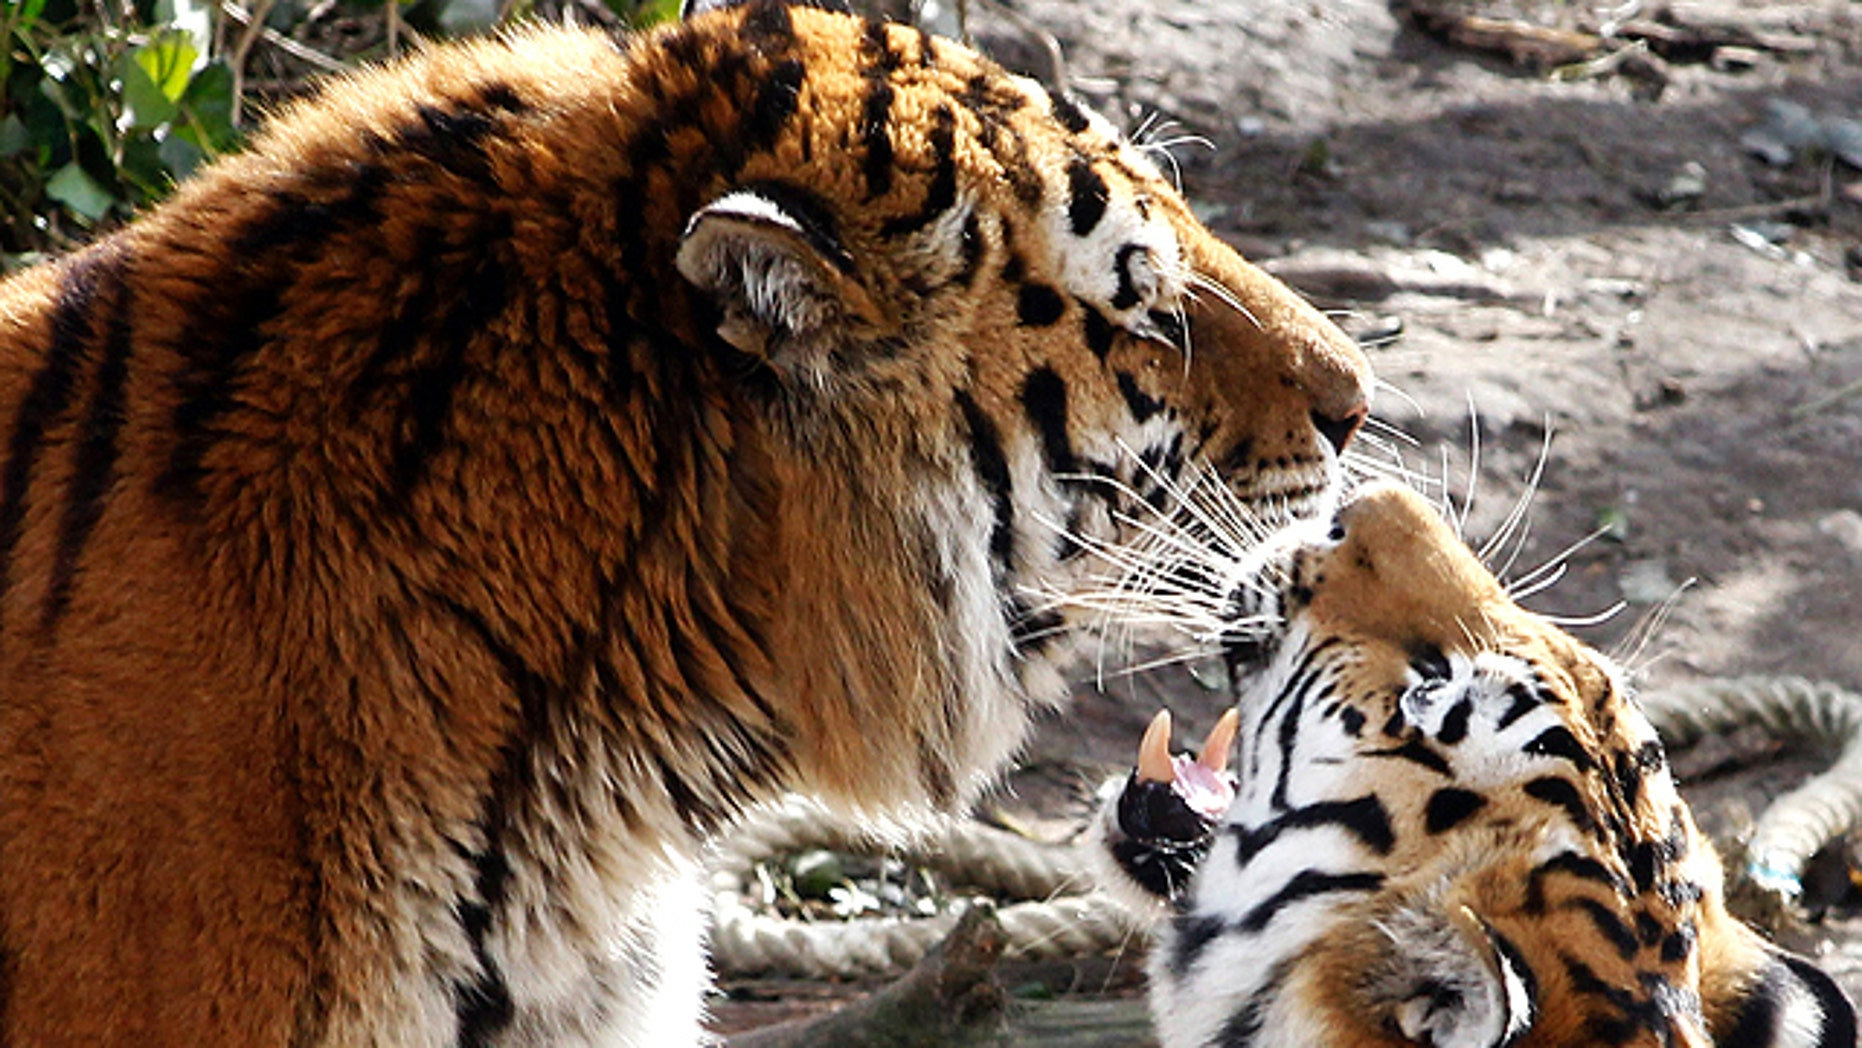 """March 8, 2012: Siberian tigers """"Altai,"""" left, and """"Hanya"""" in their enclosure in the Cologne Zoo. 'Altai' escaped the enclosure at Cologne Zoo in western Germany and killed a female keeper before being shot dead by the zoo's director, police said. The tiger managed to get from the enclosure to an adjacent storage building, where it attacked the 43-year-old keeper, said police spokesman Stefan Kirchner. """"It appears the gate wasn't properly shut,"""" Kirchner told The Associated Press. The zoo's director used a rifle to shoot the animal dead through the storage building's skylight before it could make its way to the visitor areas, he added. (AP)"""